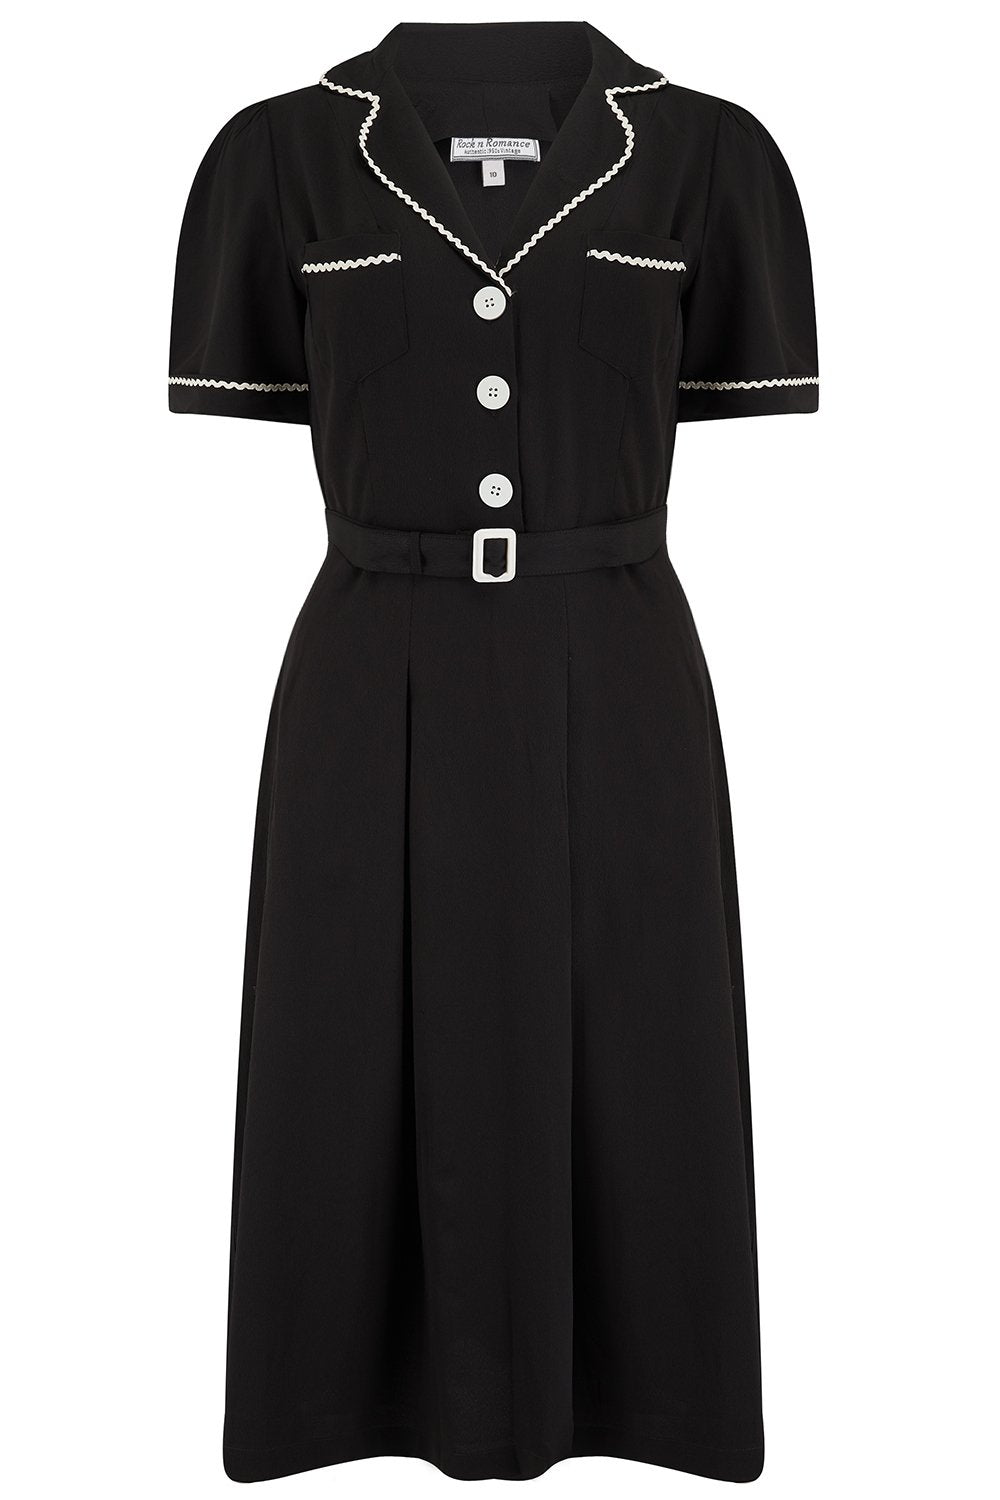 Vintage Shirtwaist Dress History Pre-Order The Kitty Shirtwaister Dress in Black with Contrast Ric-Rac True Late 40s Early 1950s Vintage Style £49.00 AT vintagedancer.com